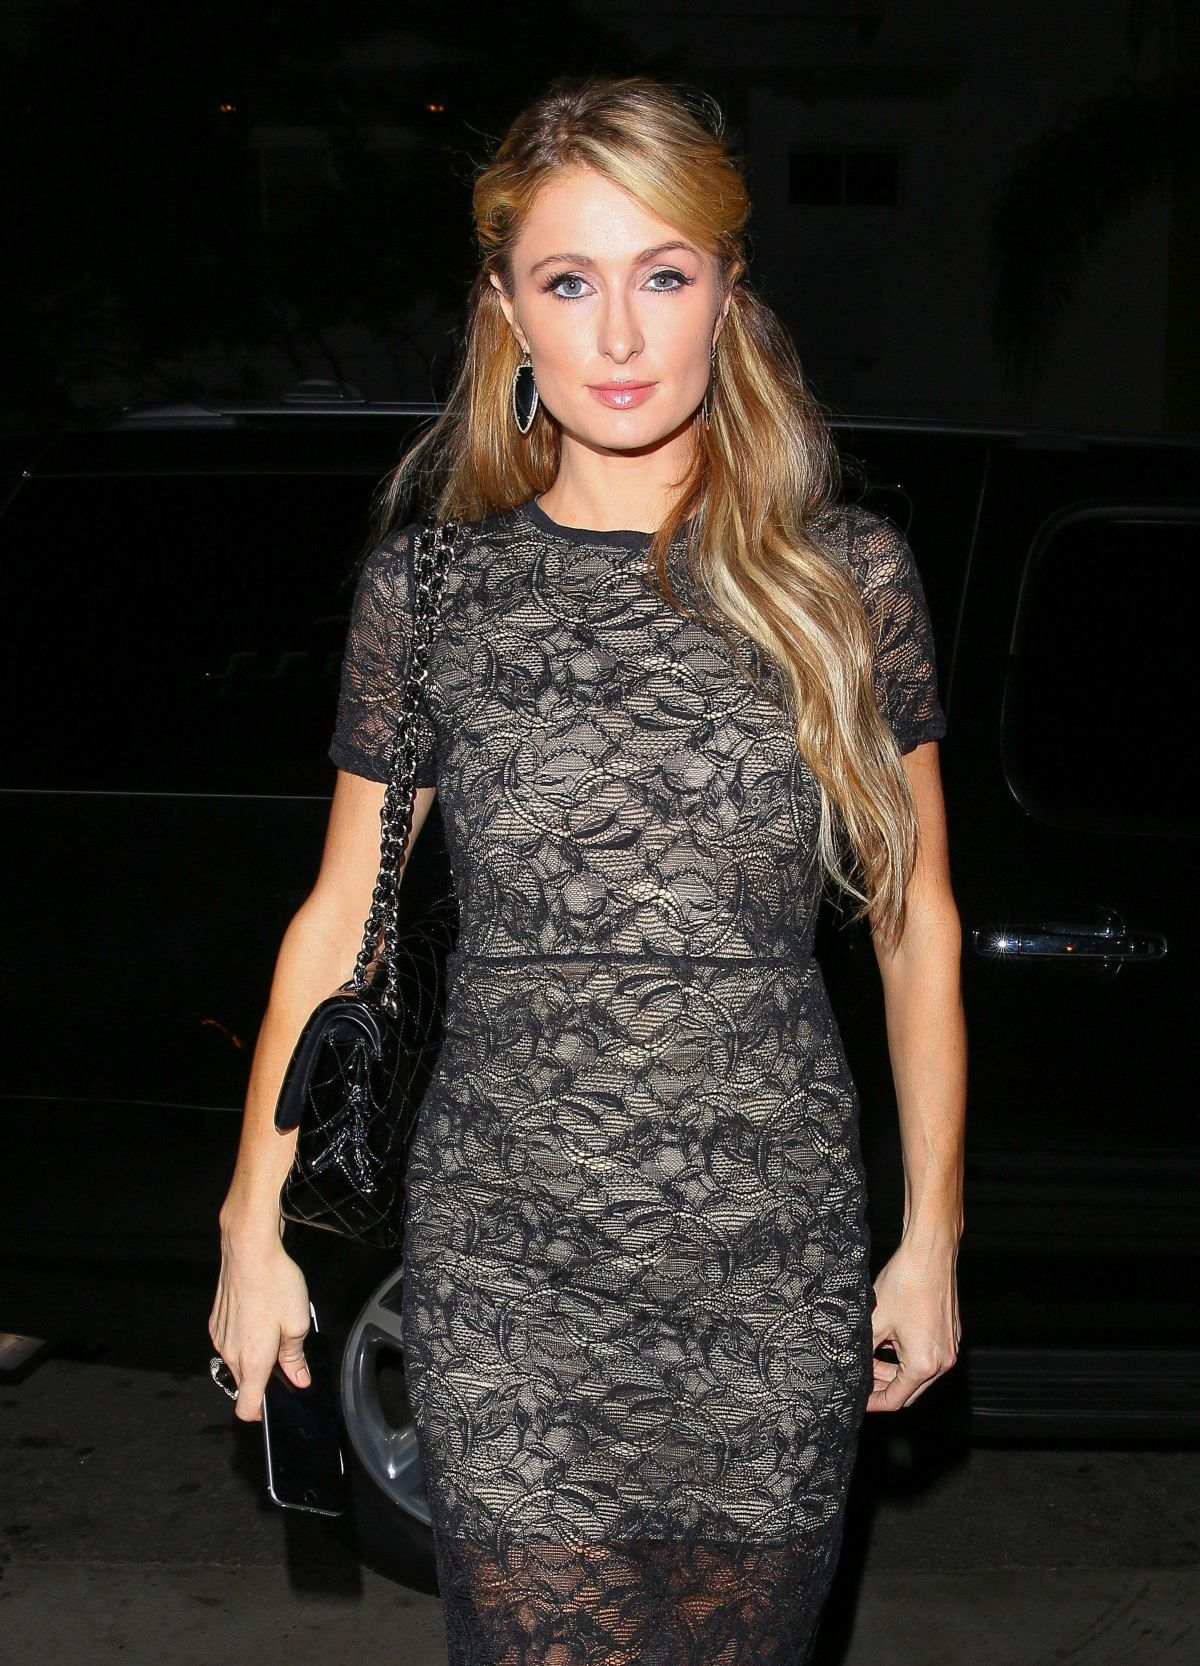 PARIS HILTON Arrives at Palms in Beverly Hills 05/10/2015 - HawtCelebs ... Paris Hilton